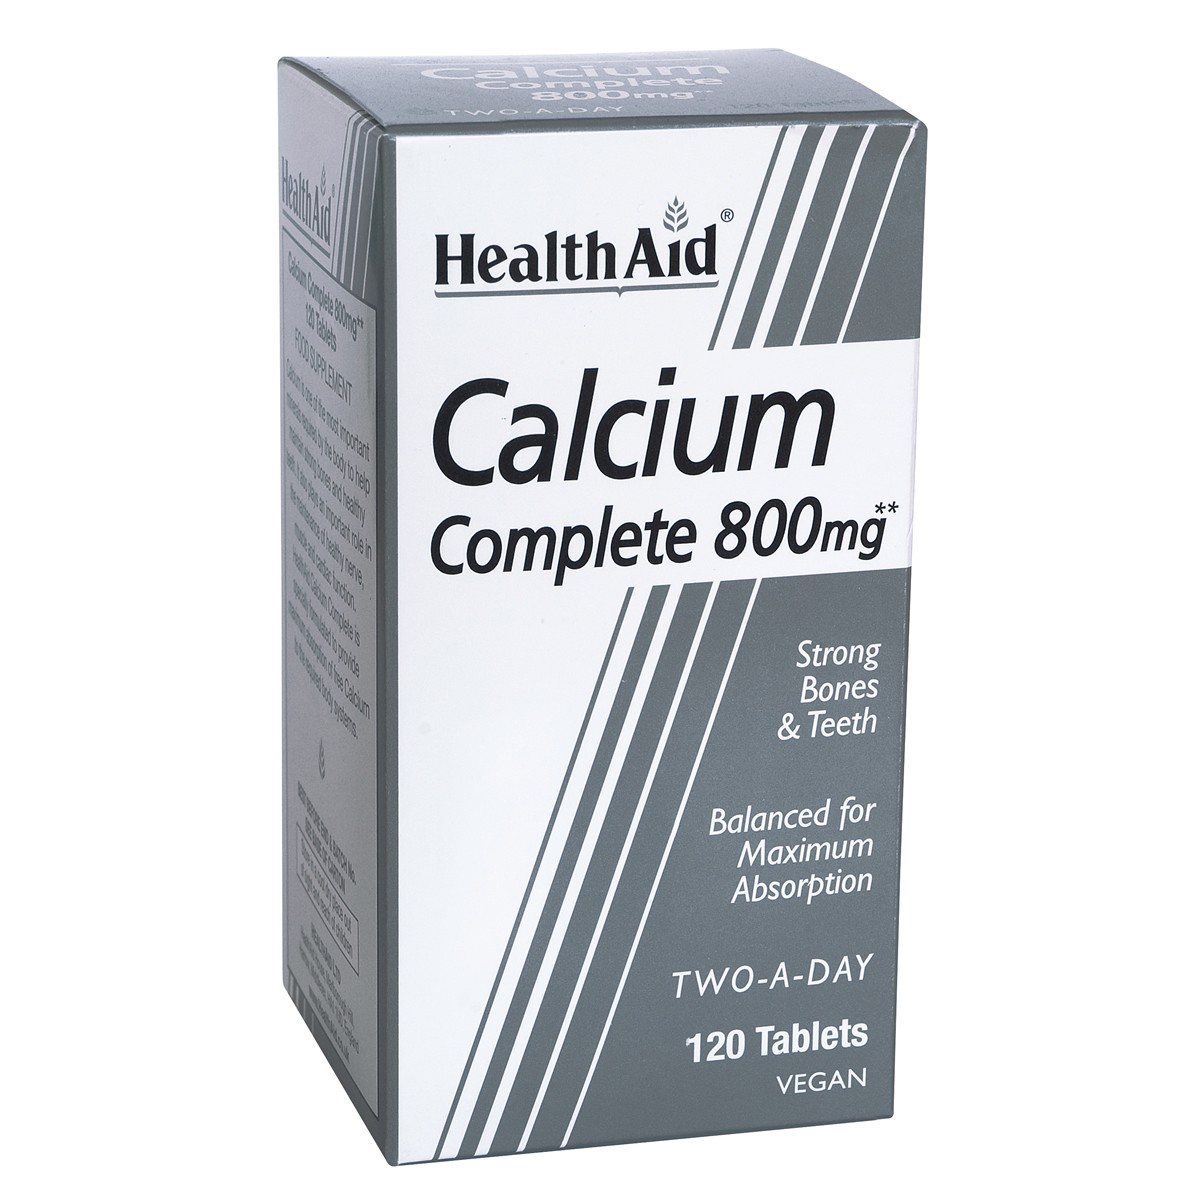 HealthAid Balanced Calcium Complete 800mg